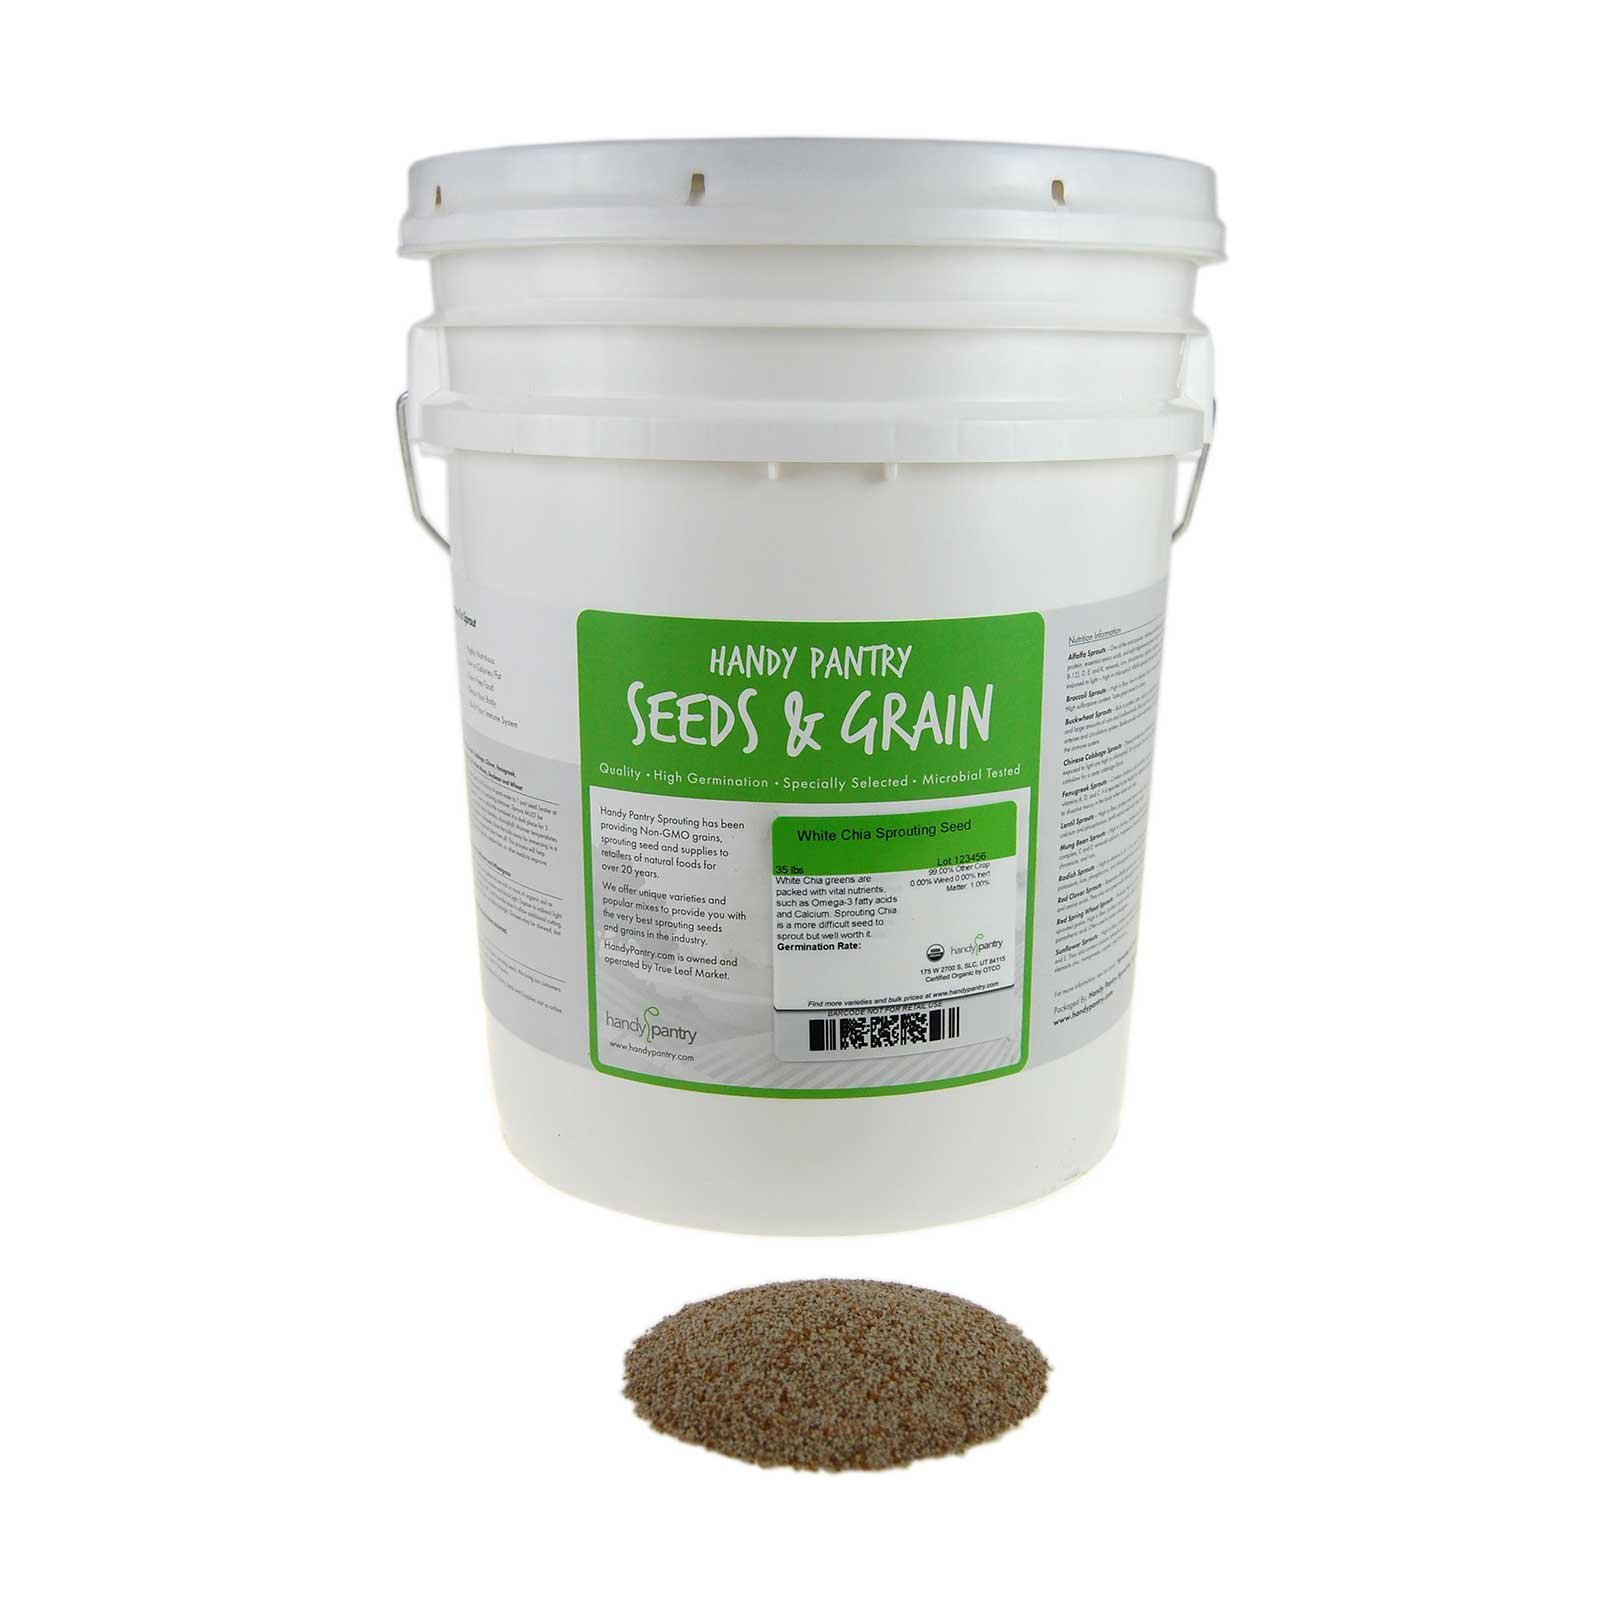 Handy Pantry Organic White Chia Seeds- 35 Lbs- Sprouting Seeds For Growing Sprouts, Chia Pet Refills, Food Storage, Sprout Salad